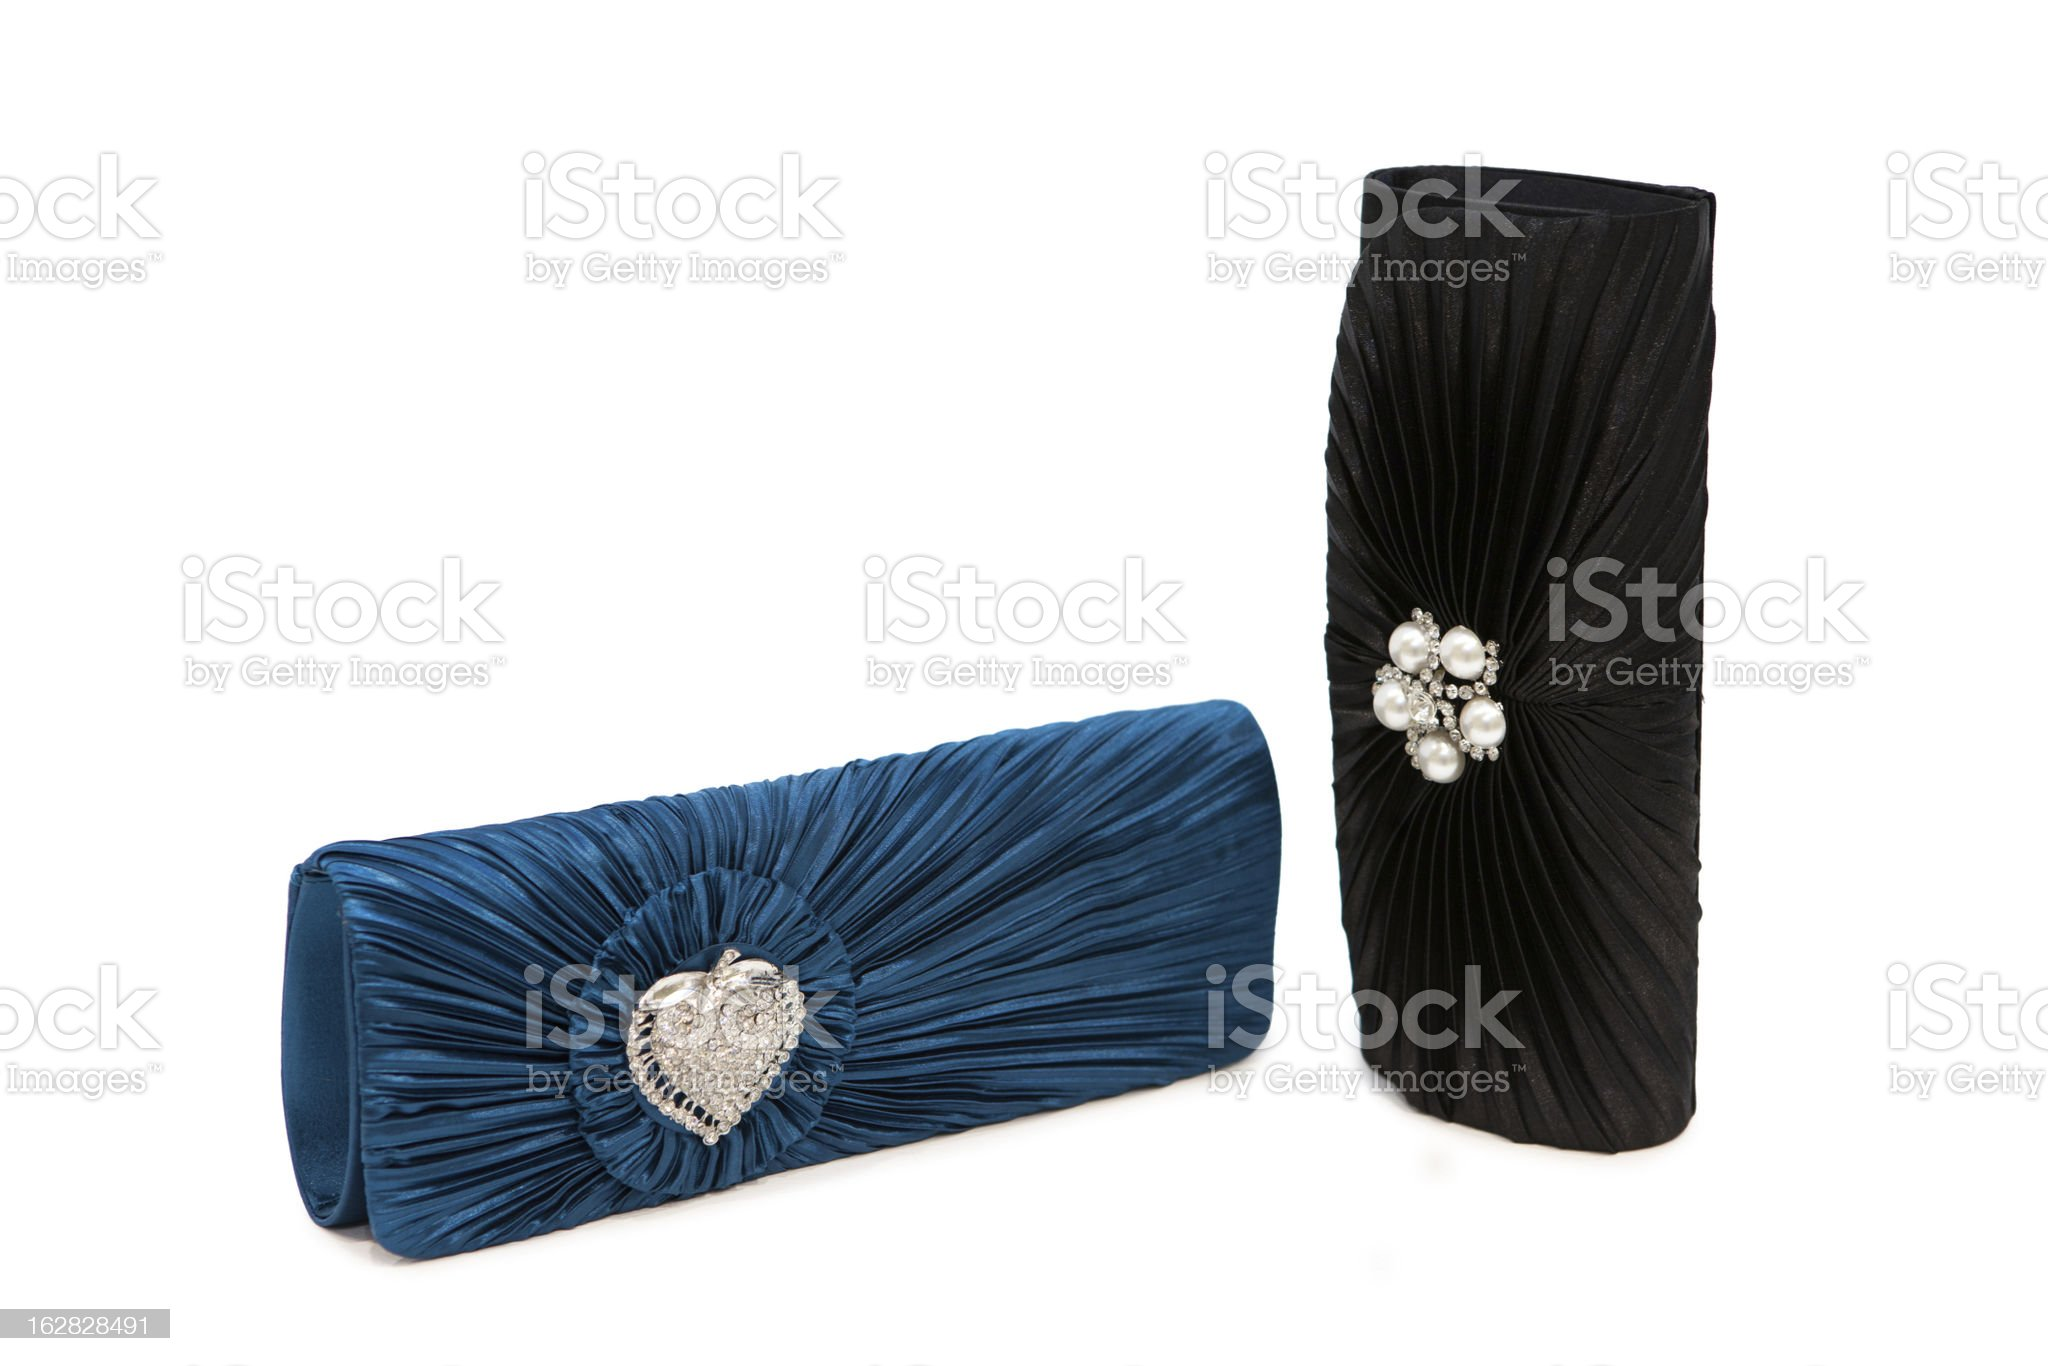 Luxurious clutch bags royalty-free stock photo